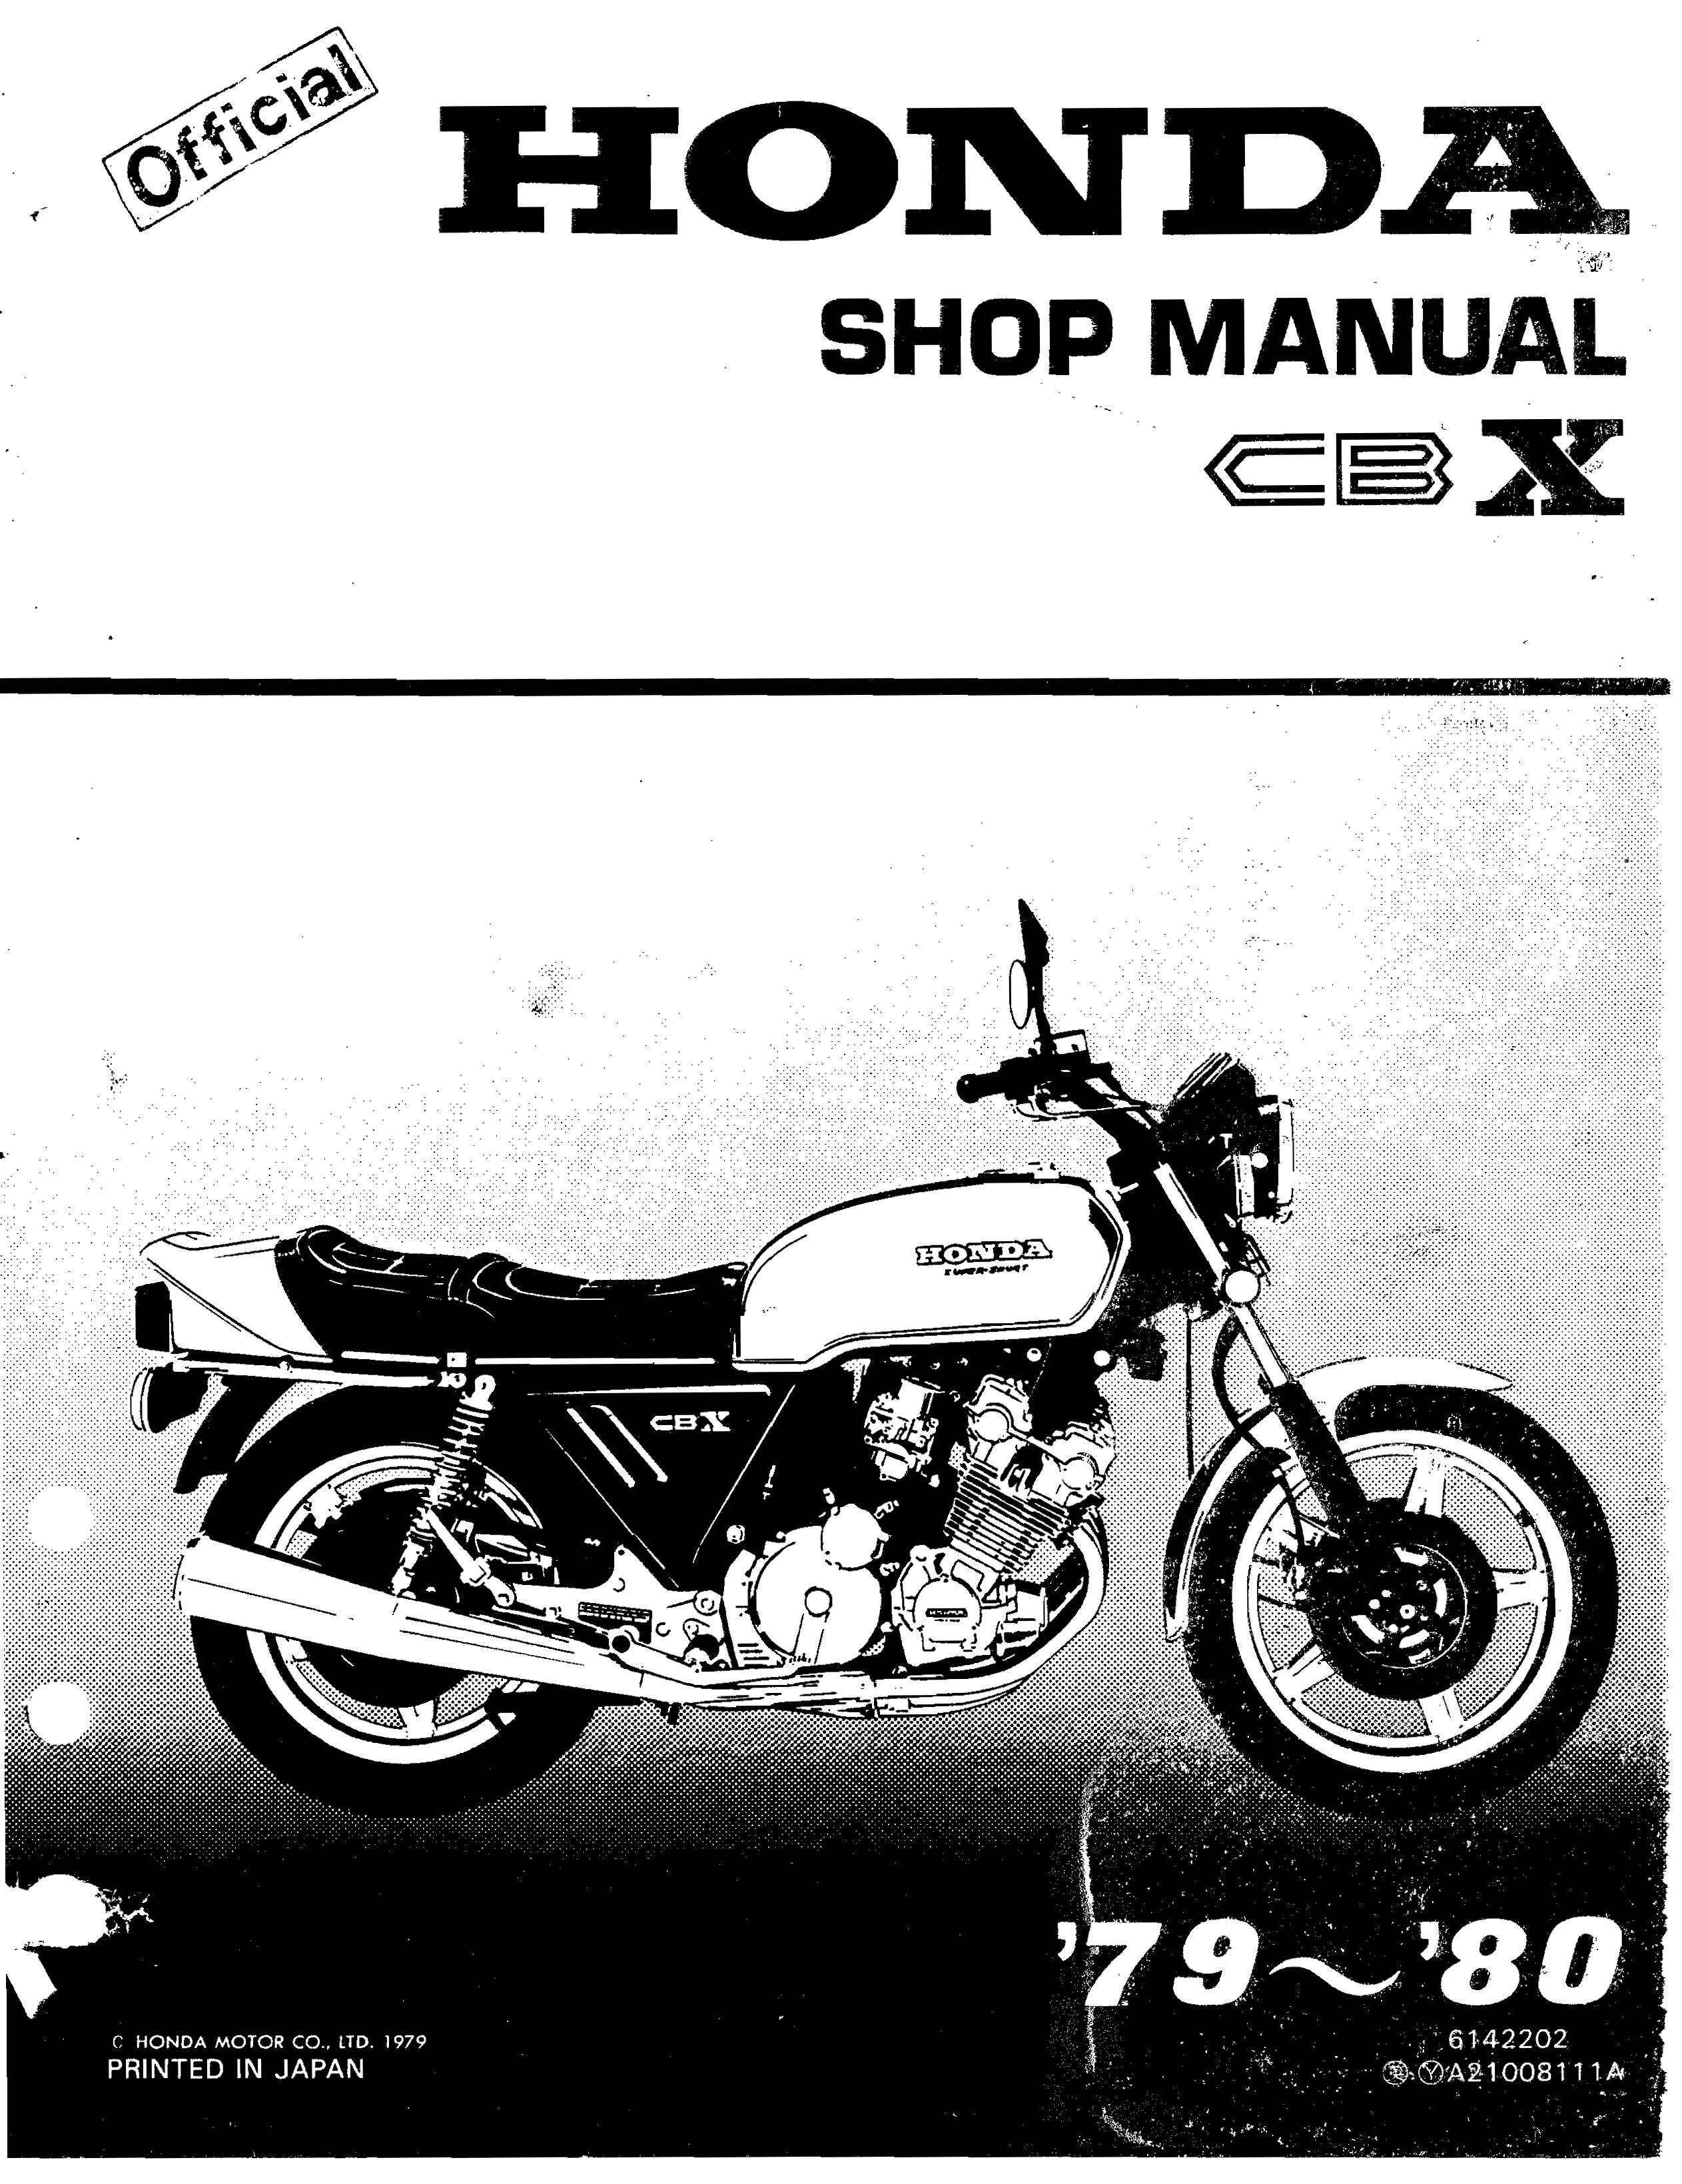 Workshop manual for Honda CBX (1979 - 1980)